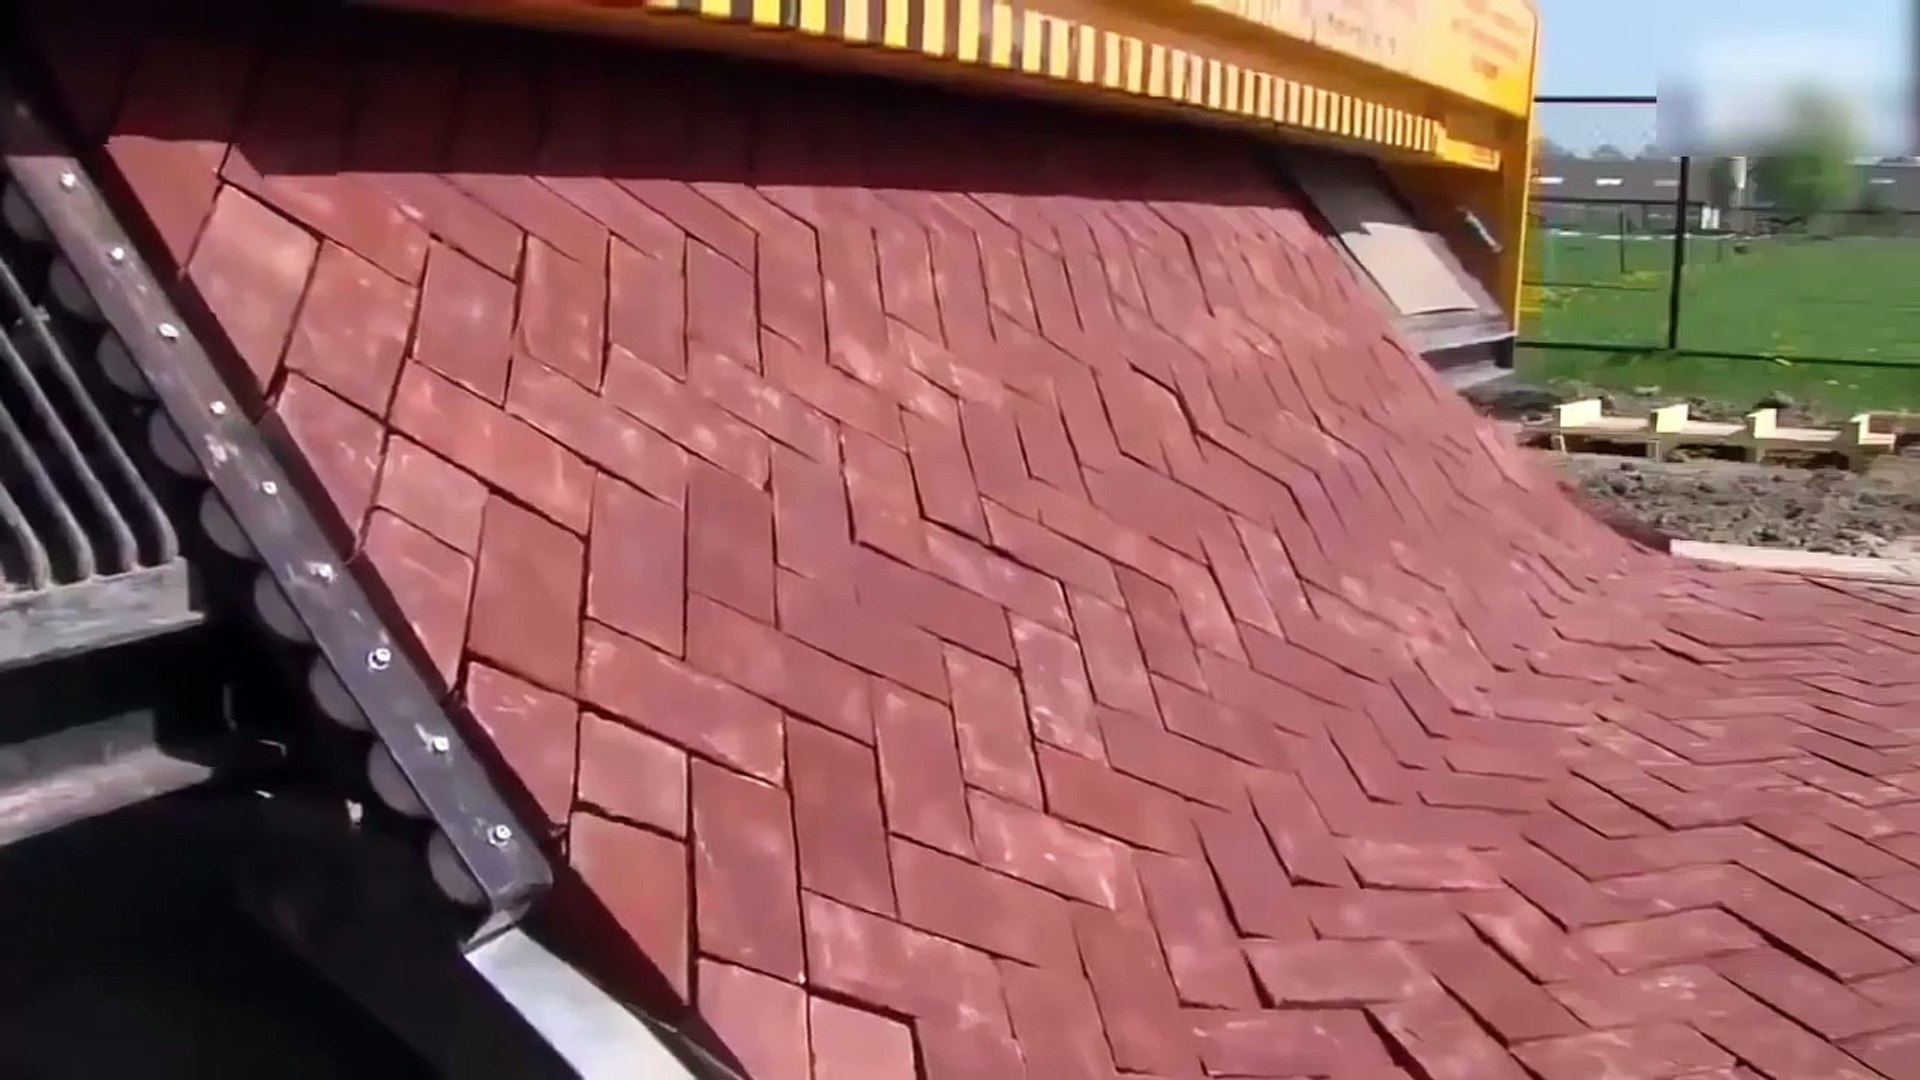 Latest Technology 2017 Road Printer Capable of Laying Bricks Perfectly on The Ground-s6Q2P